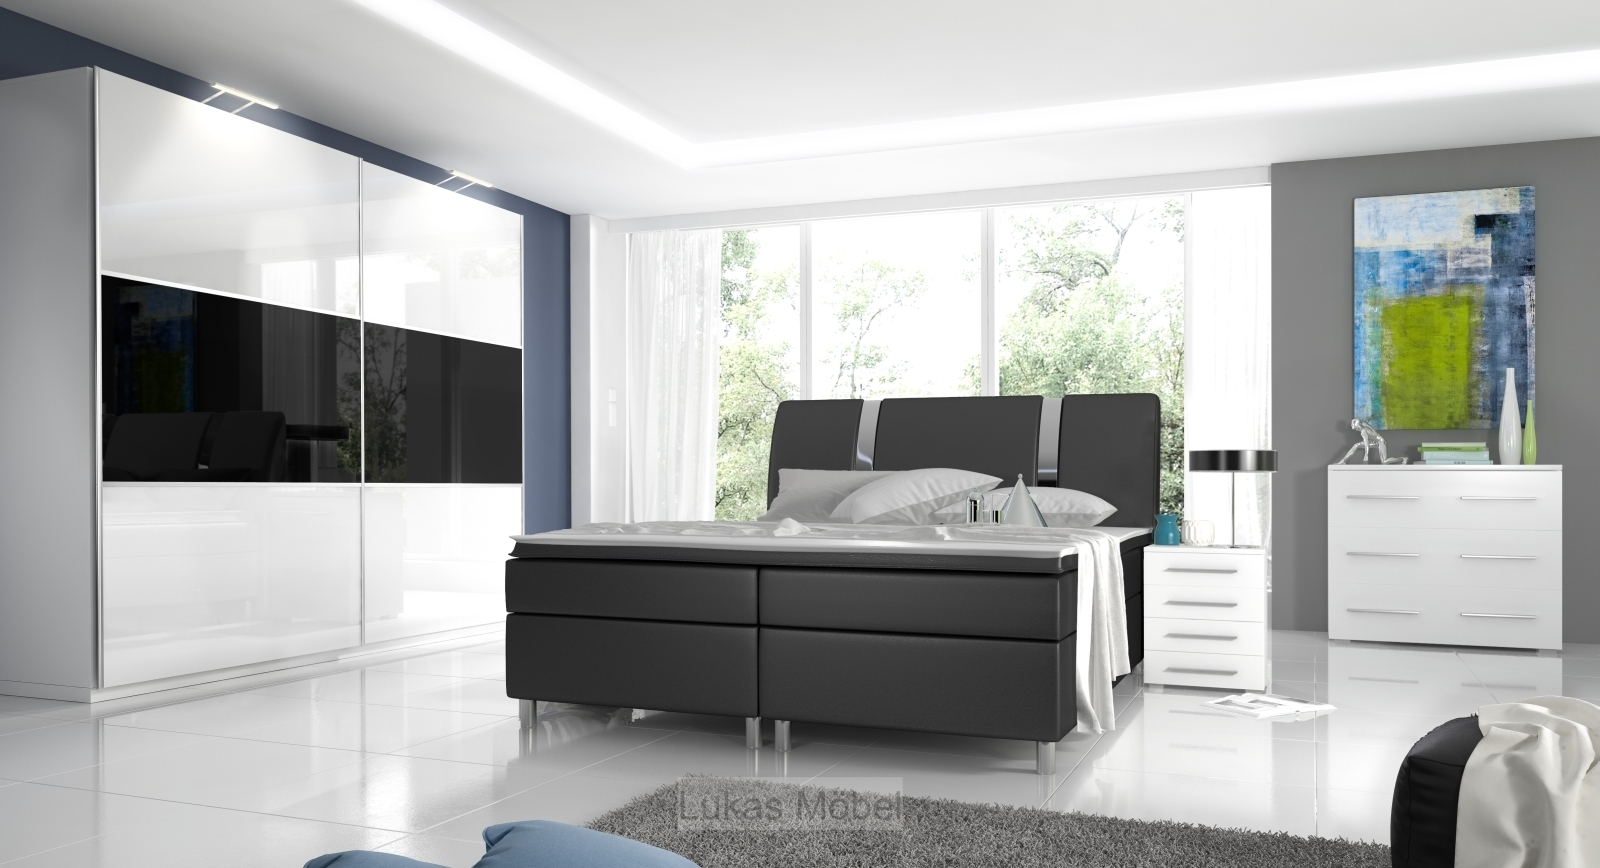 komplett schlafzimmer hochglanz rivabox. Black Bedroom Furniture Sets. Home Design Ideas